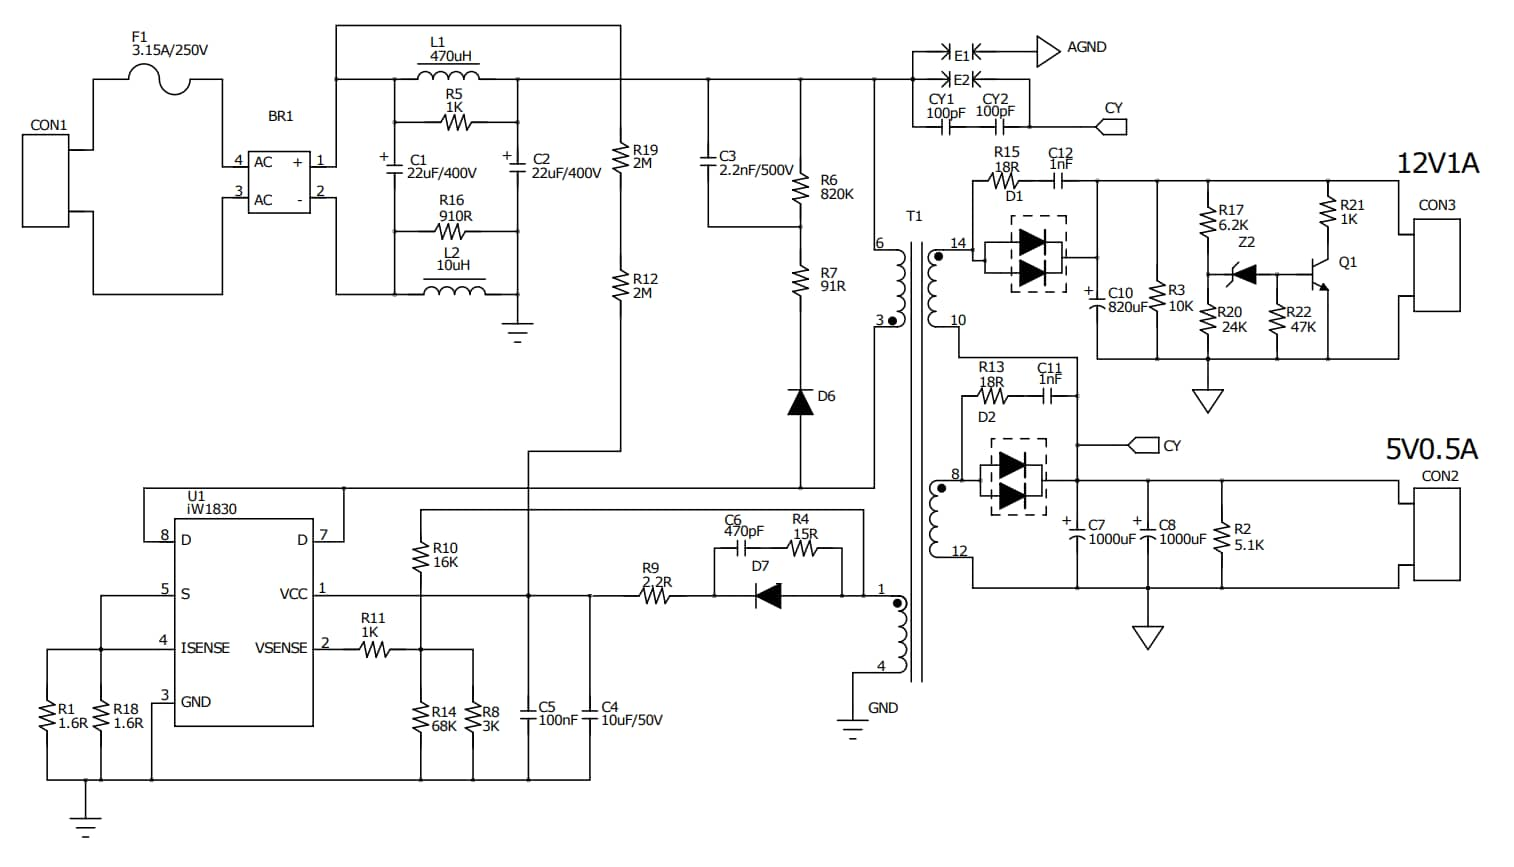 IW1830-EVAL - Schematic